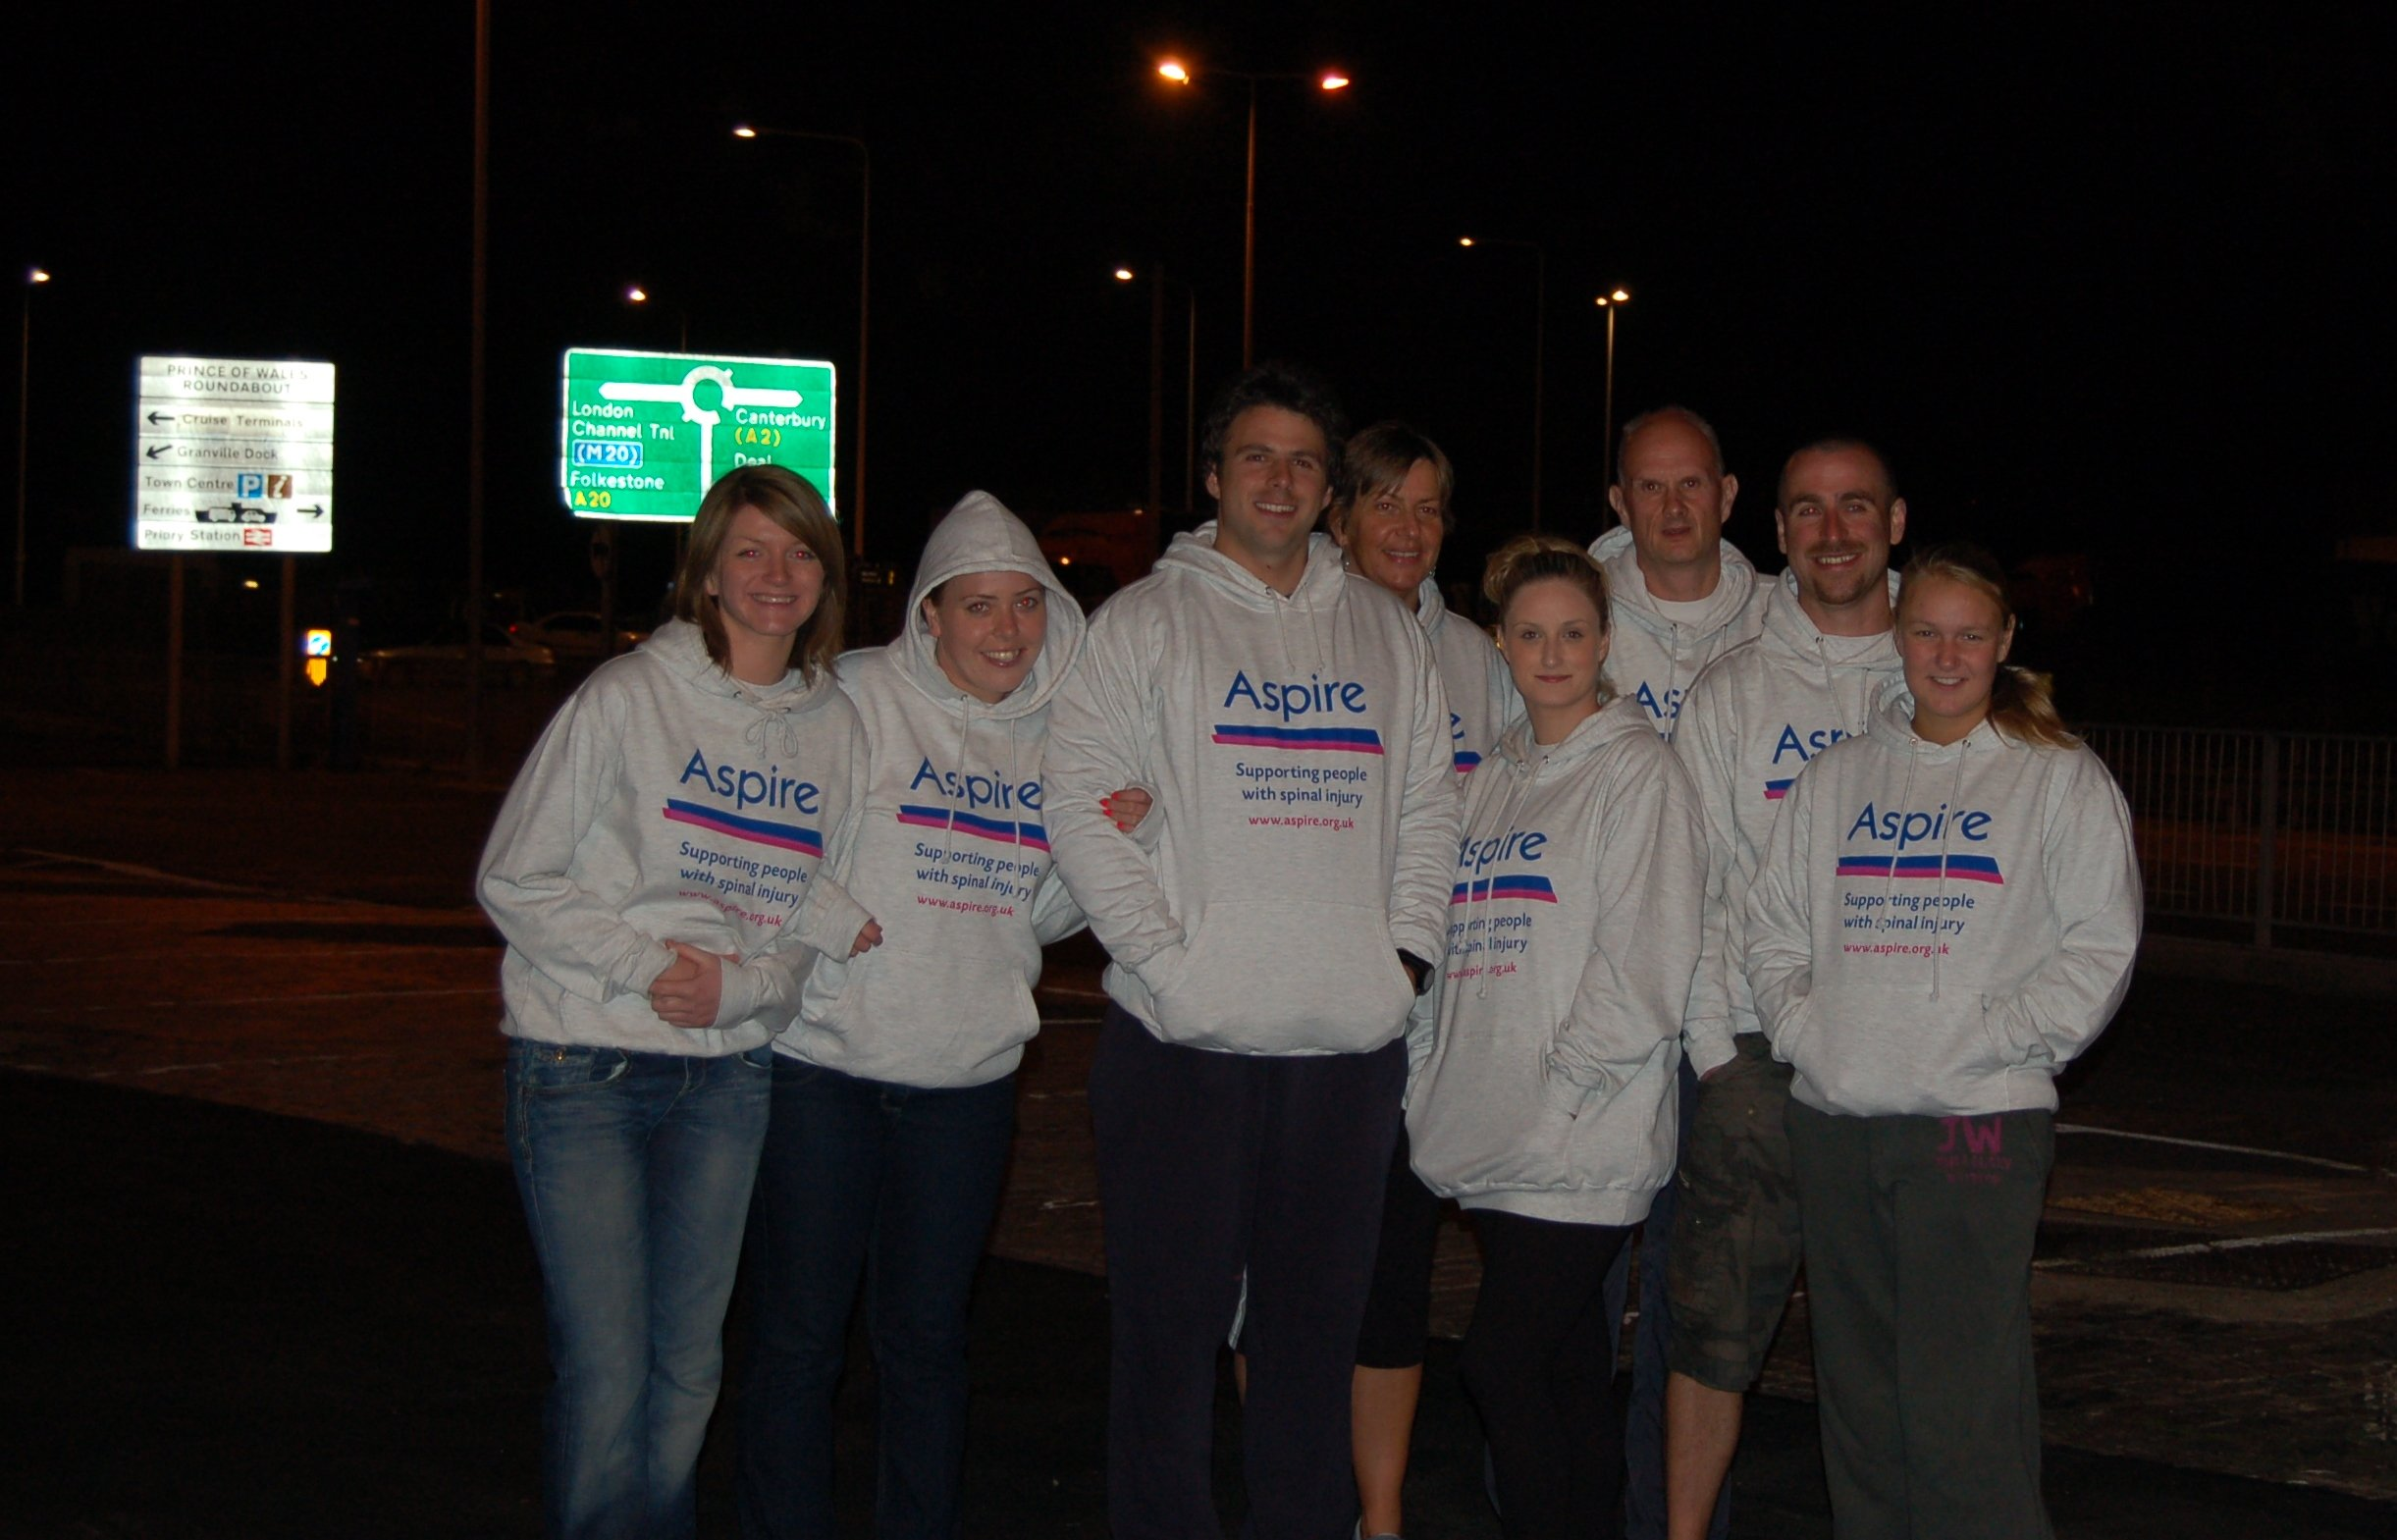 Relay channel swim team at night